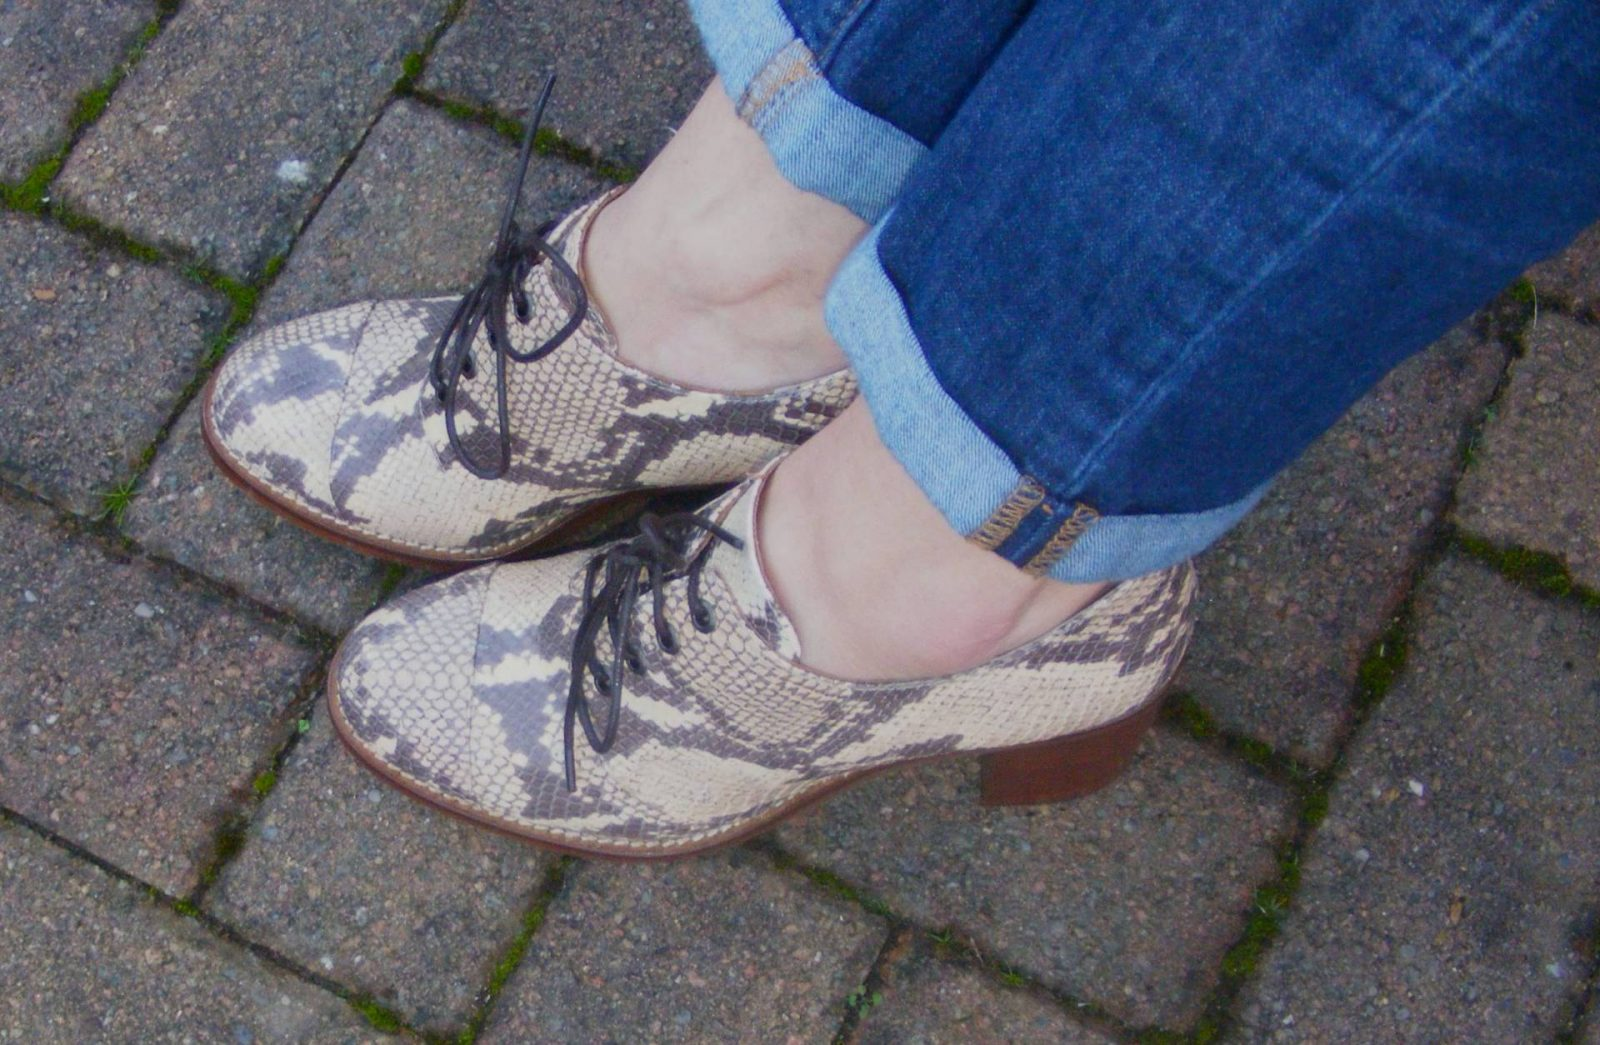 Topshop snakeskin shoes